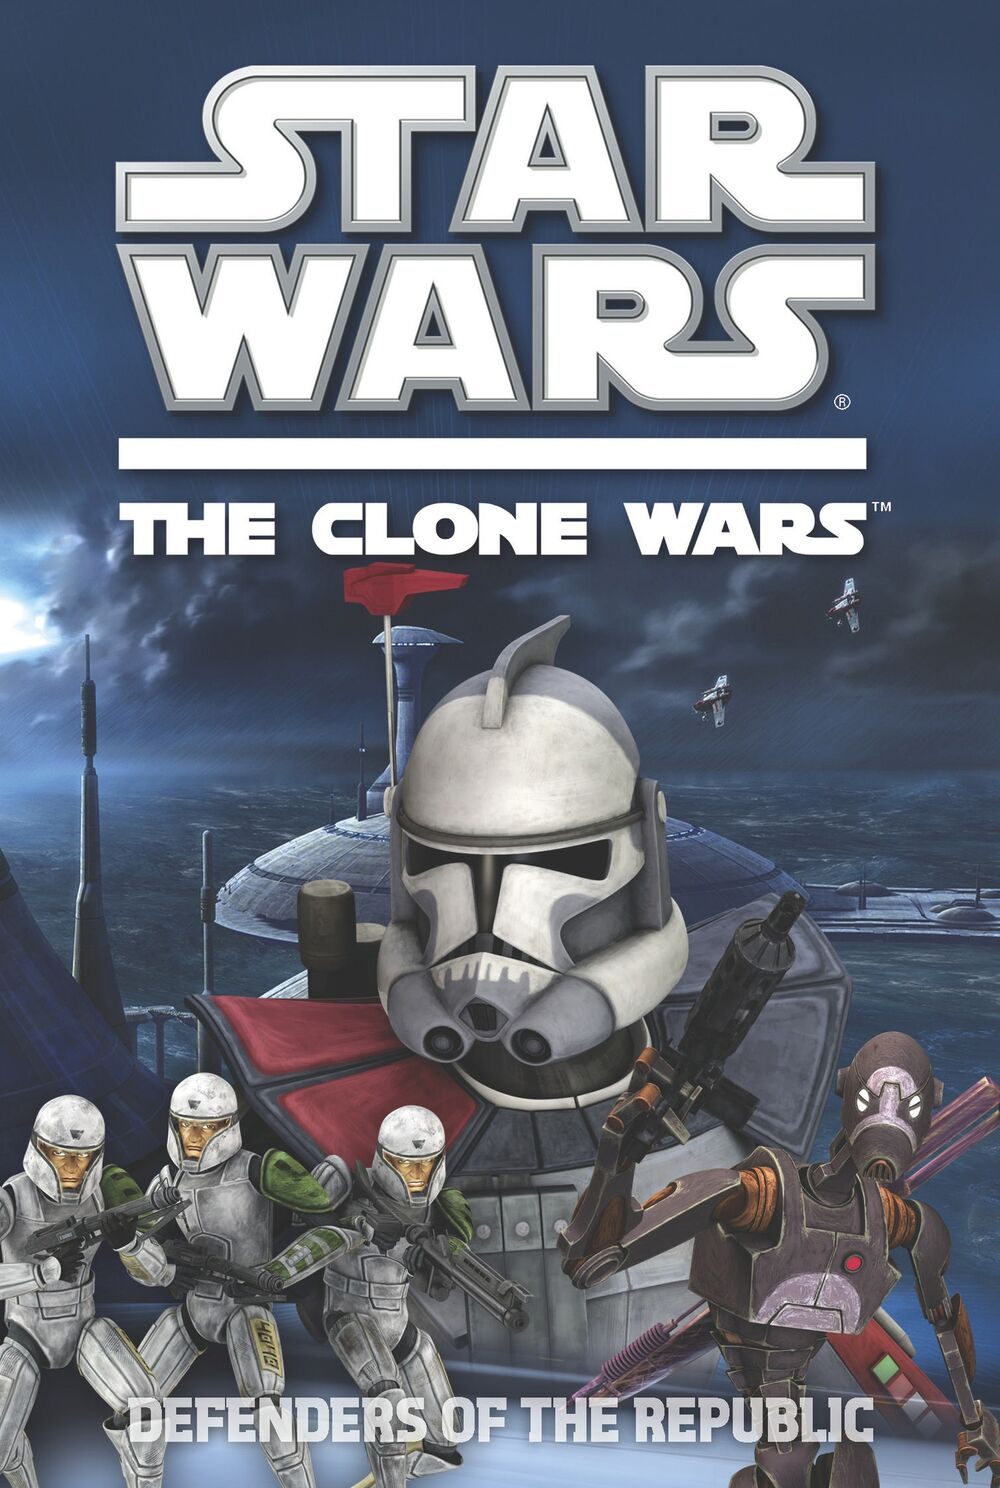 Star Wars The Clone Wars: Defenders of the Republic